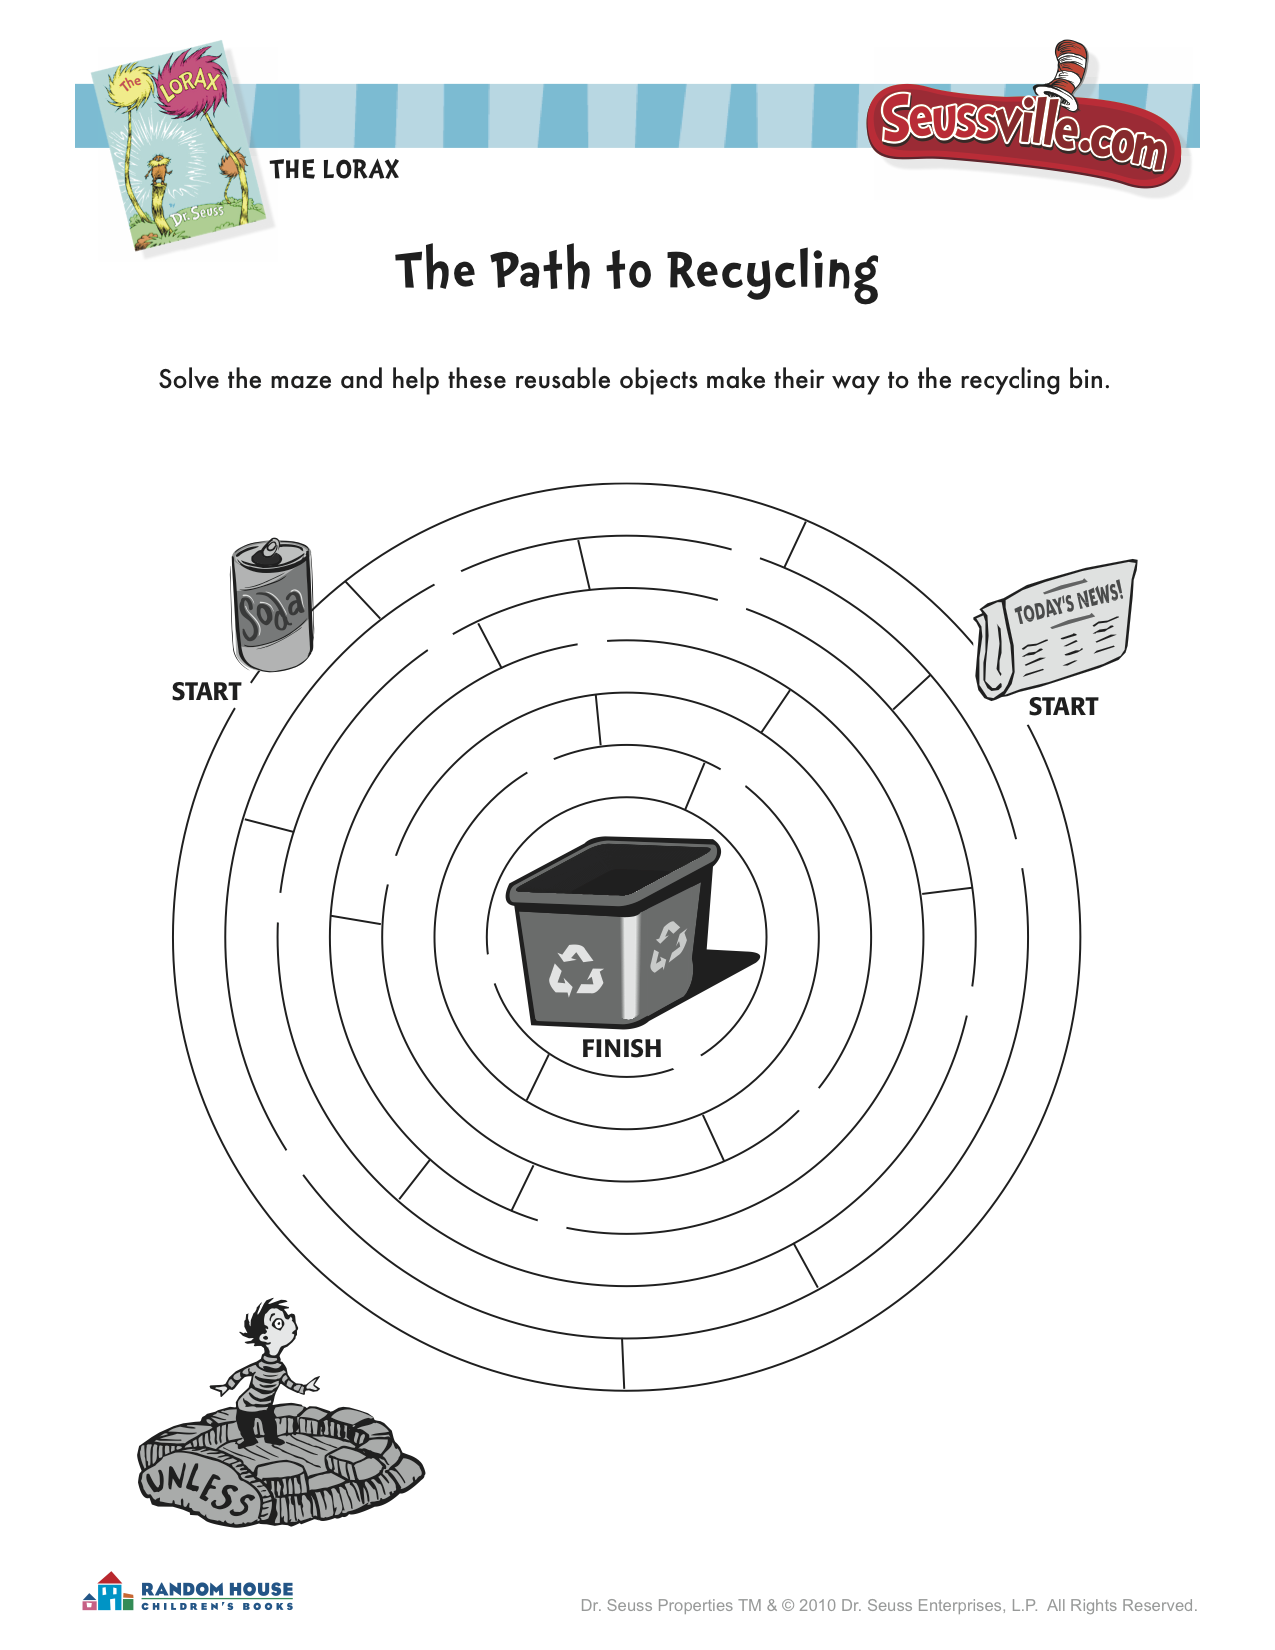 The Lorax Recycling Maze From Seussville